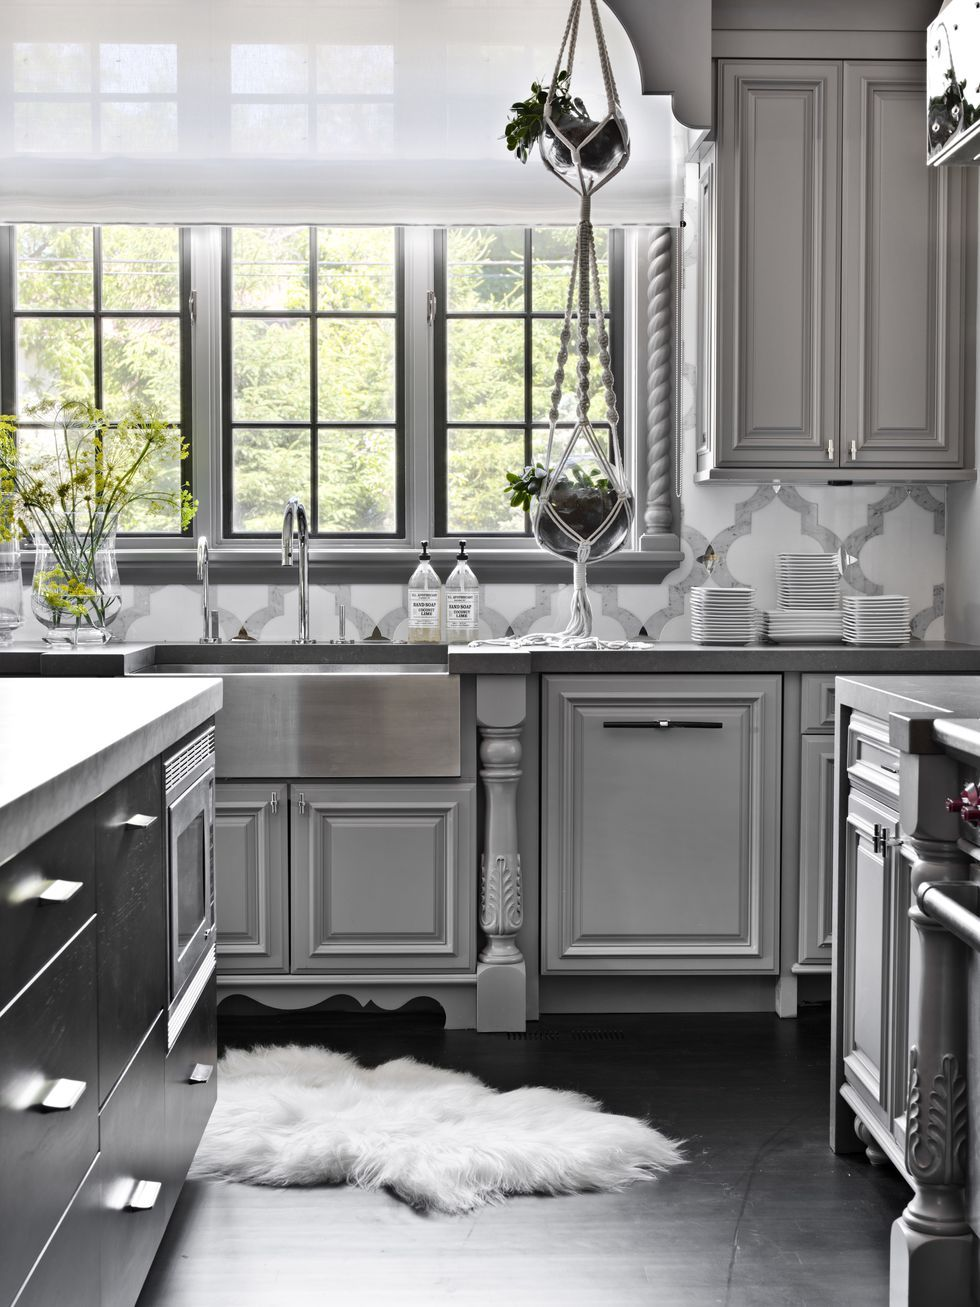 Alpine White Granite 20 Gorgeous Kitchen Tile Backsplashes - Best Kitchen Tile